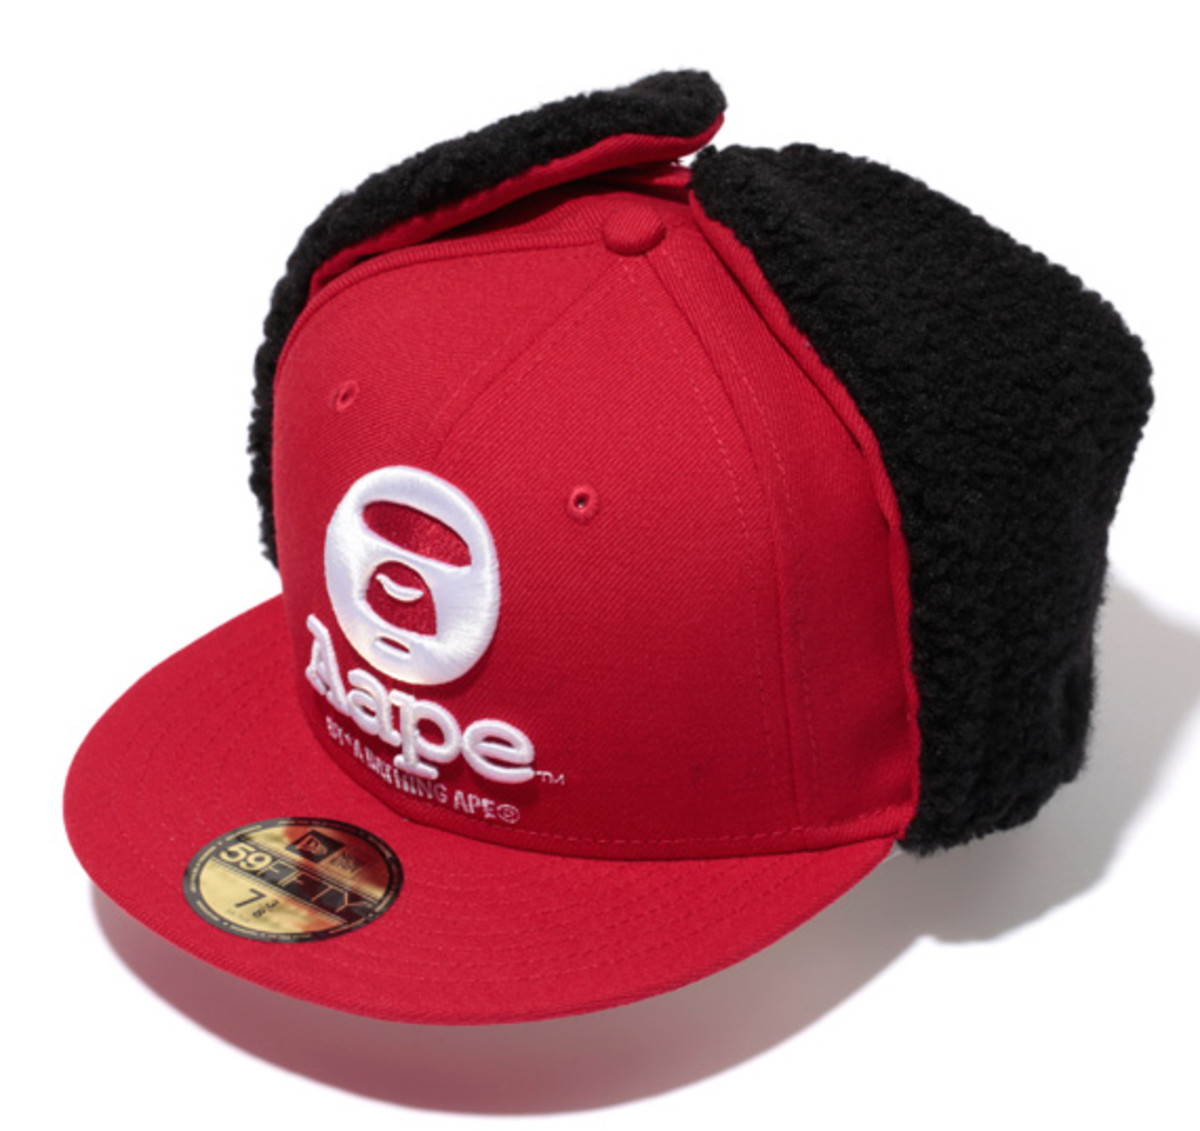 aape-x-new-era-og-moon-face-dog-ear-cap